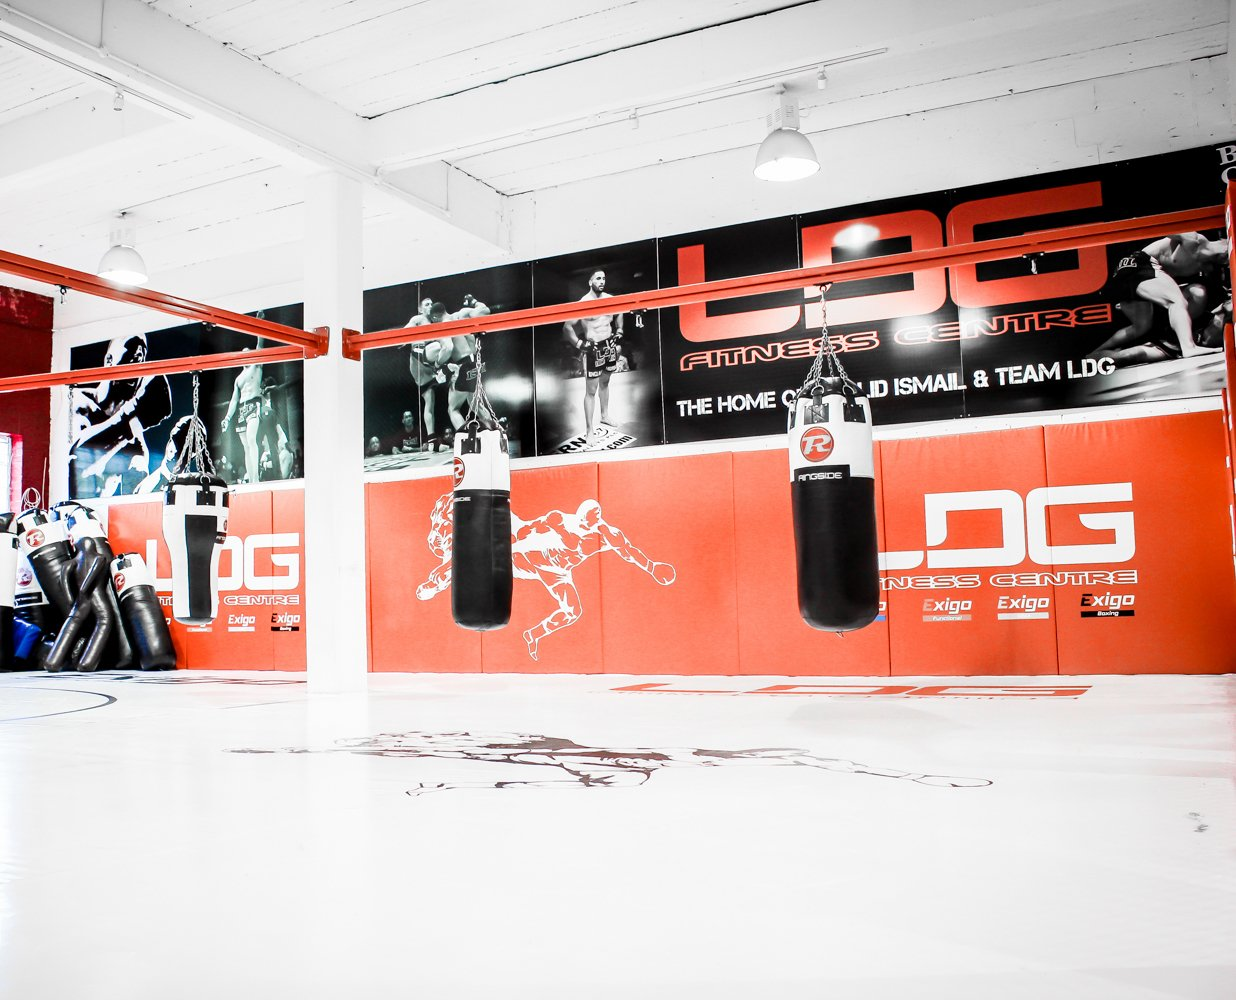 Complete digital transformation for an established gym in East London